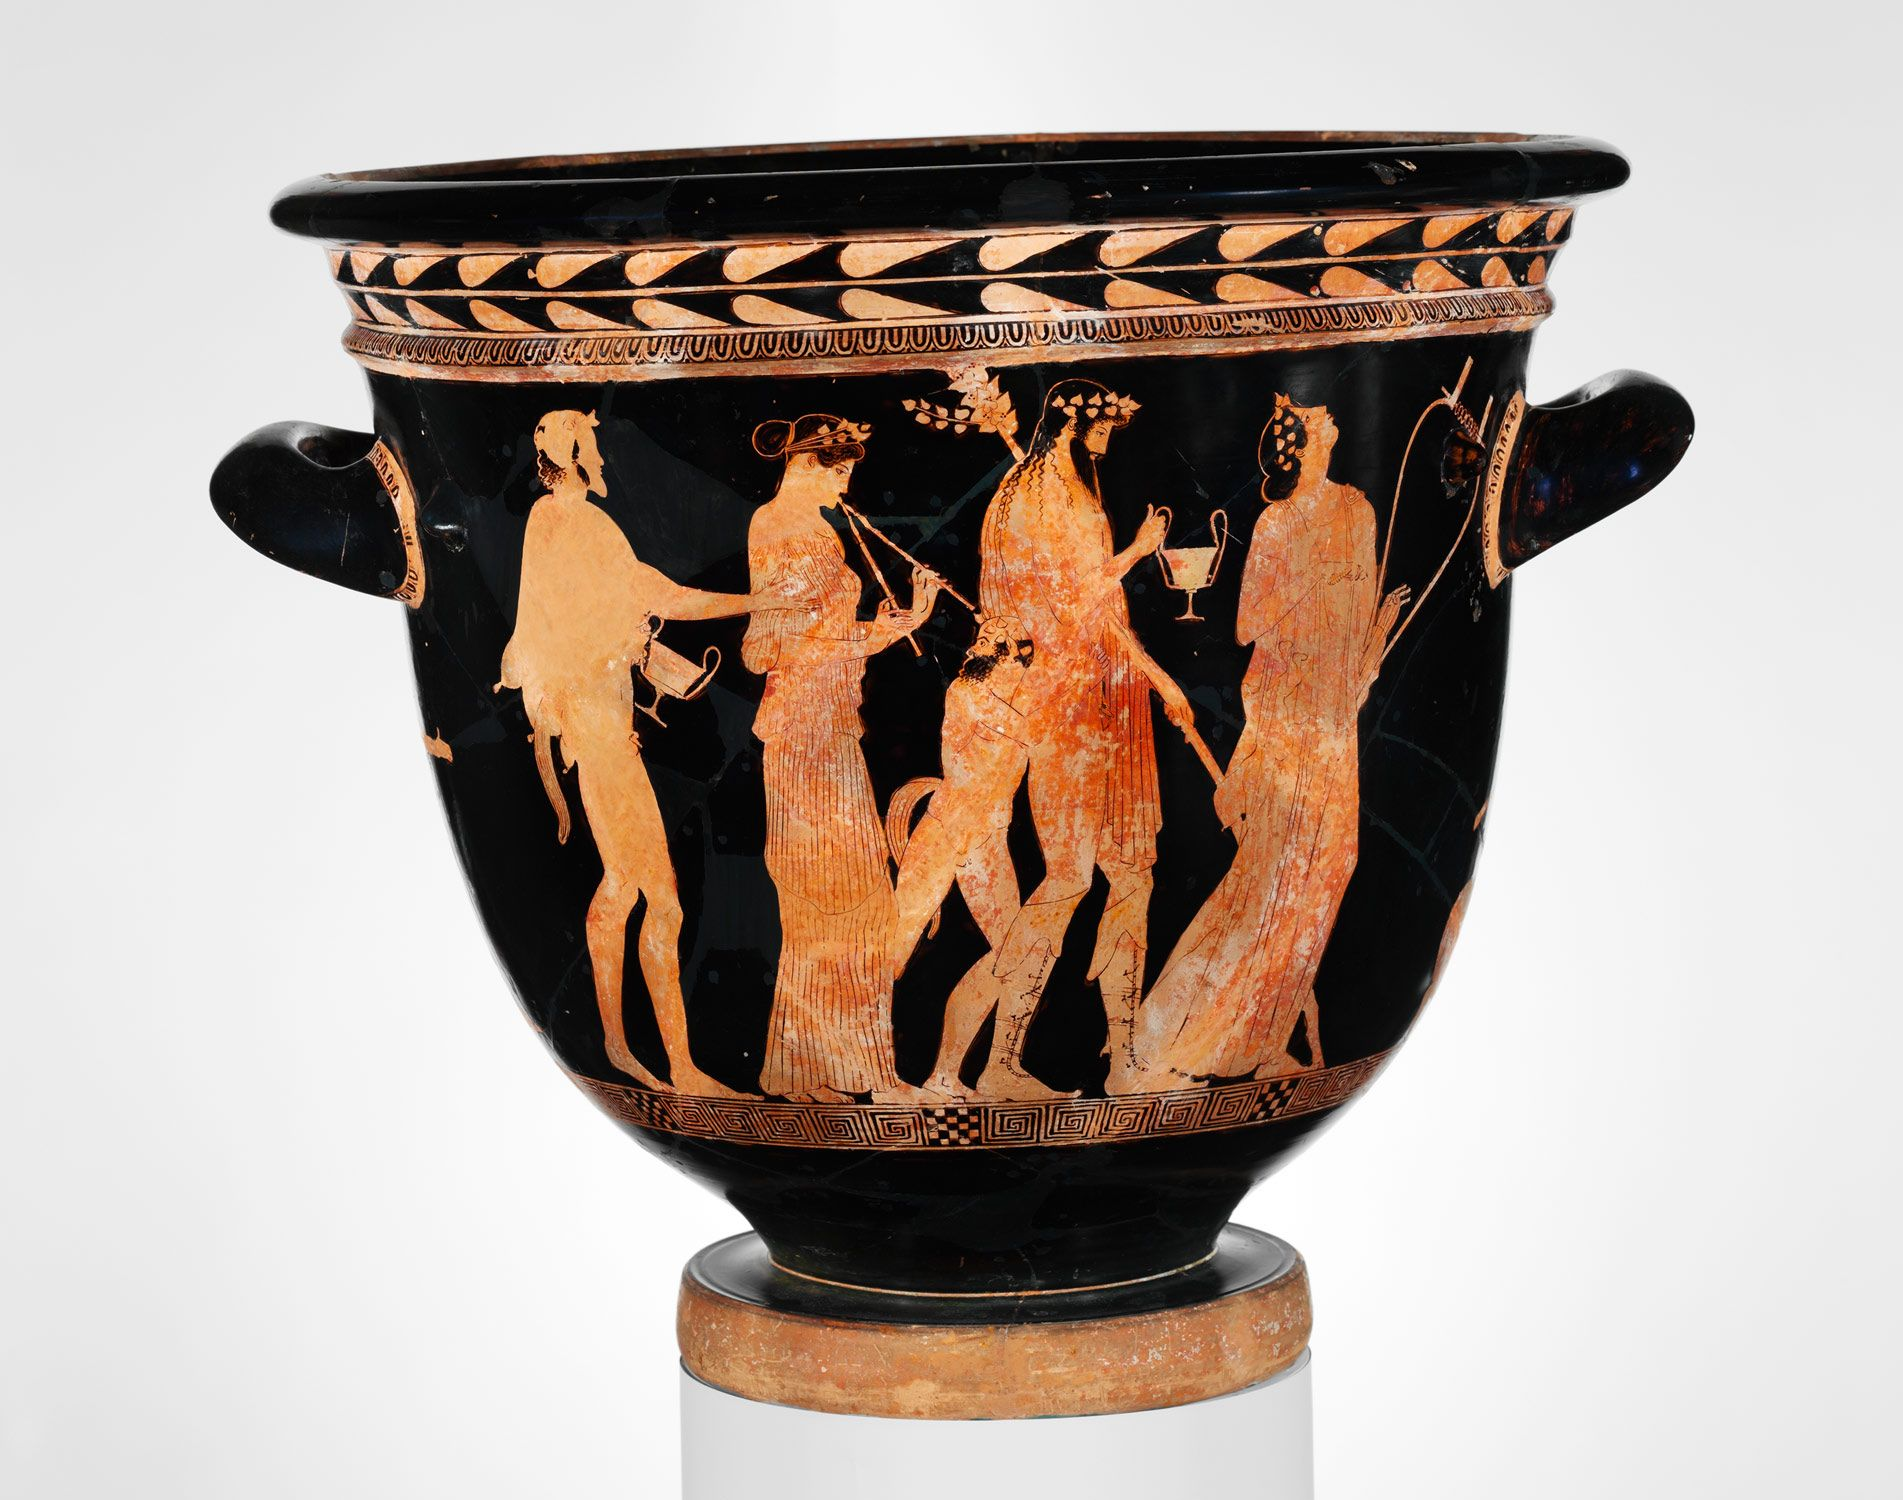 Terracotta bell krater bowl for mixing wine and water attributed terracotta bell krater bowl for mixing wine and water attributed to the methyse floridaeventfo Gallery